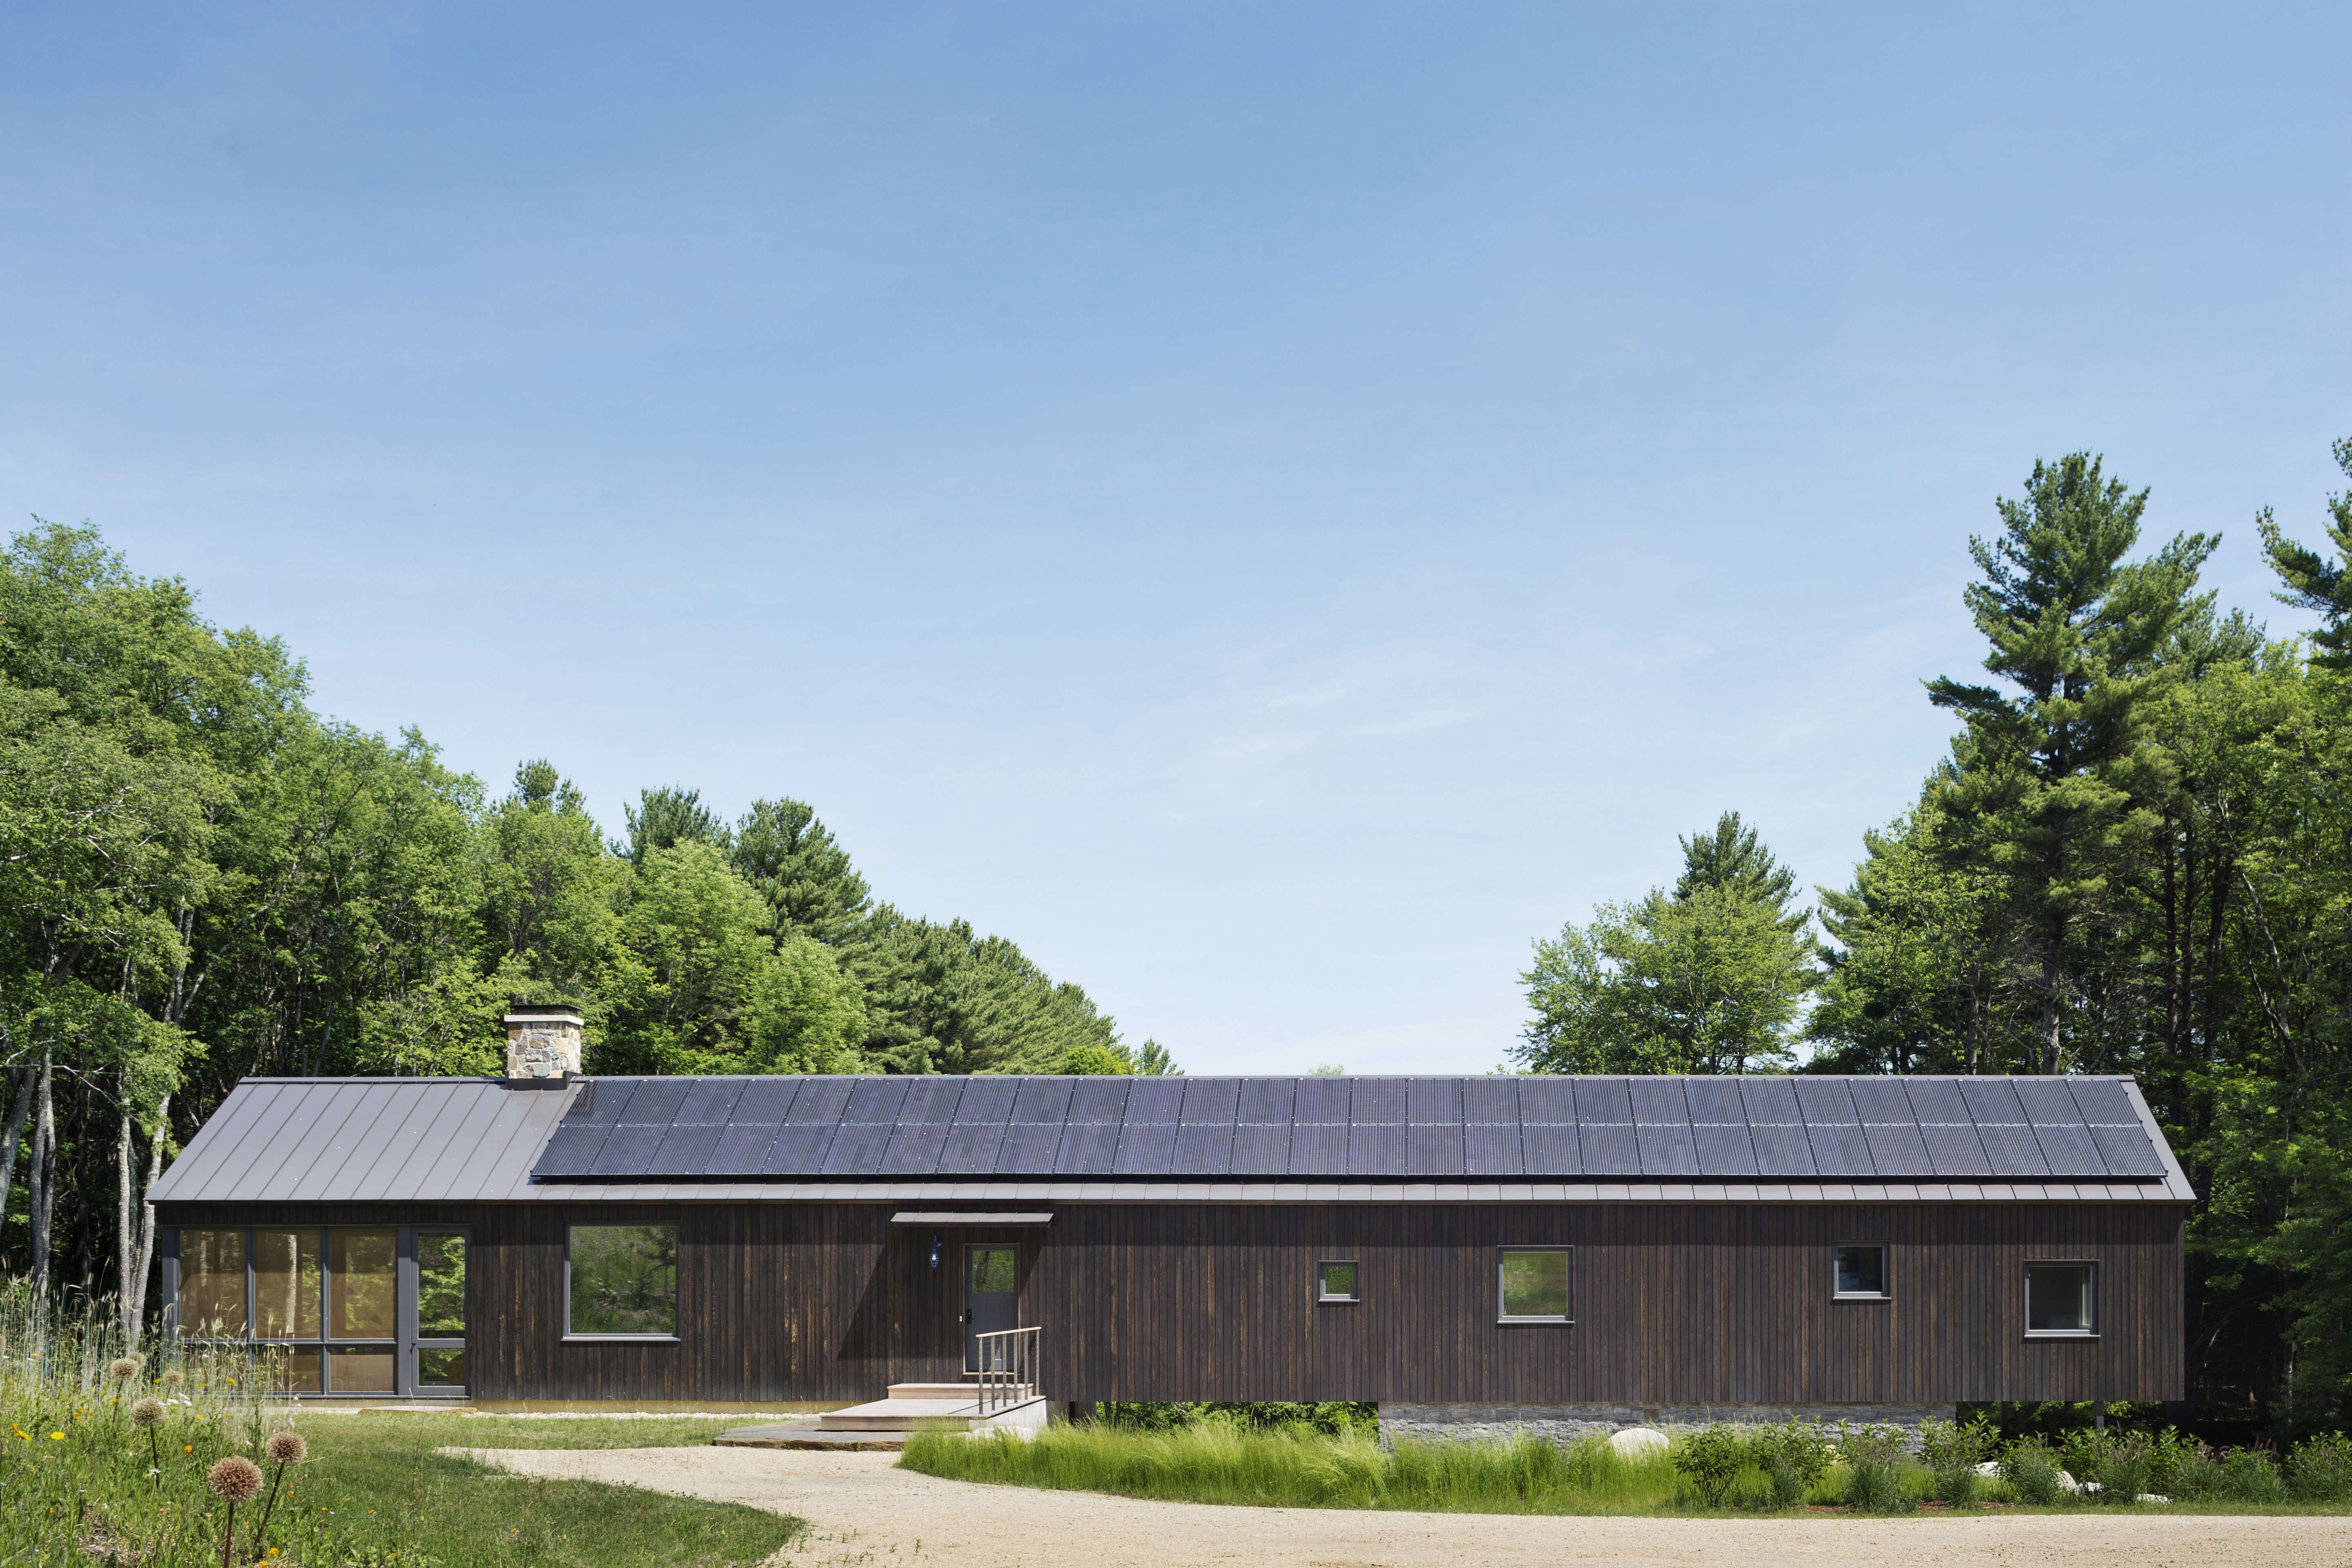 standing seam metal roof and solar panels on undermountain, a barn style house  10